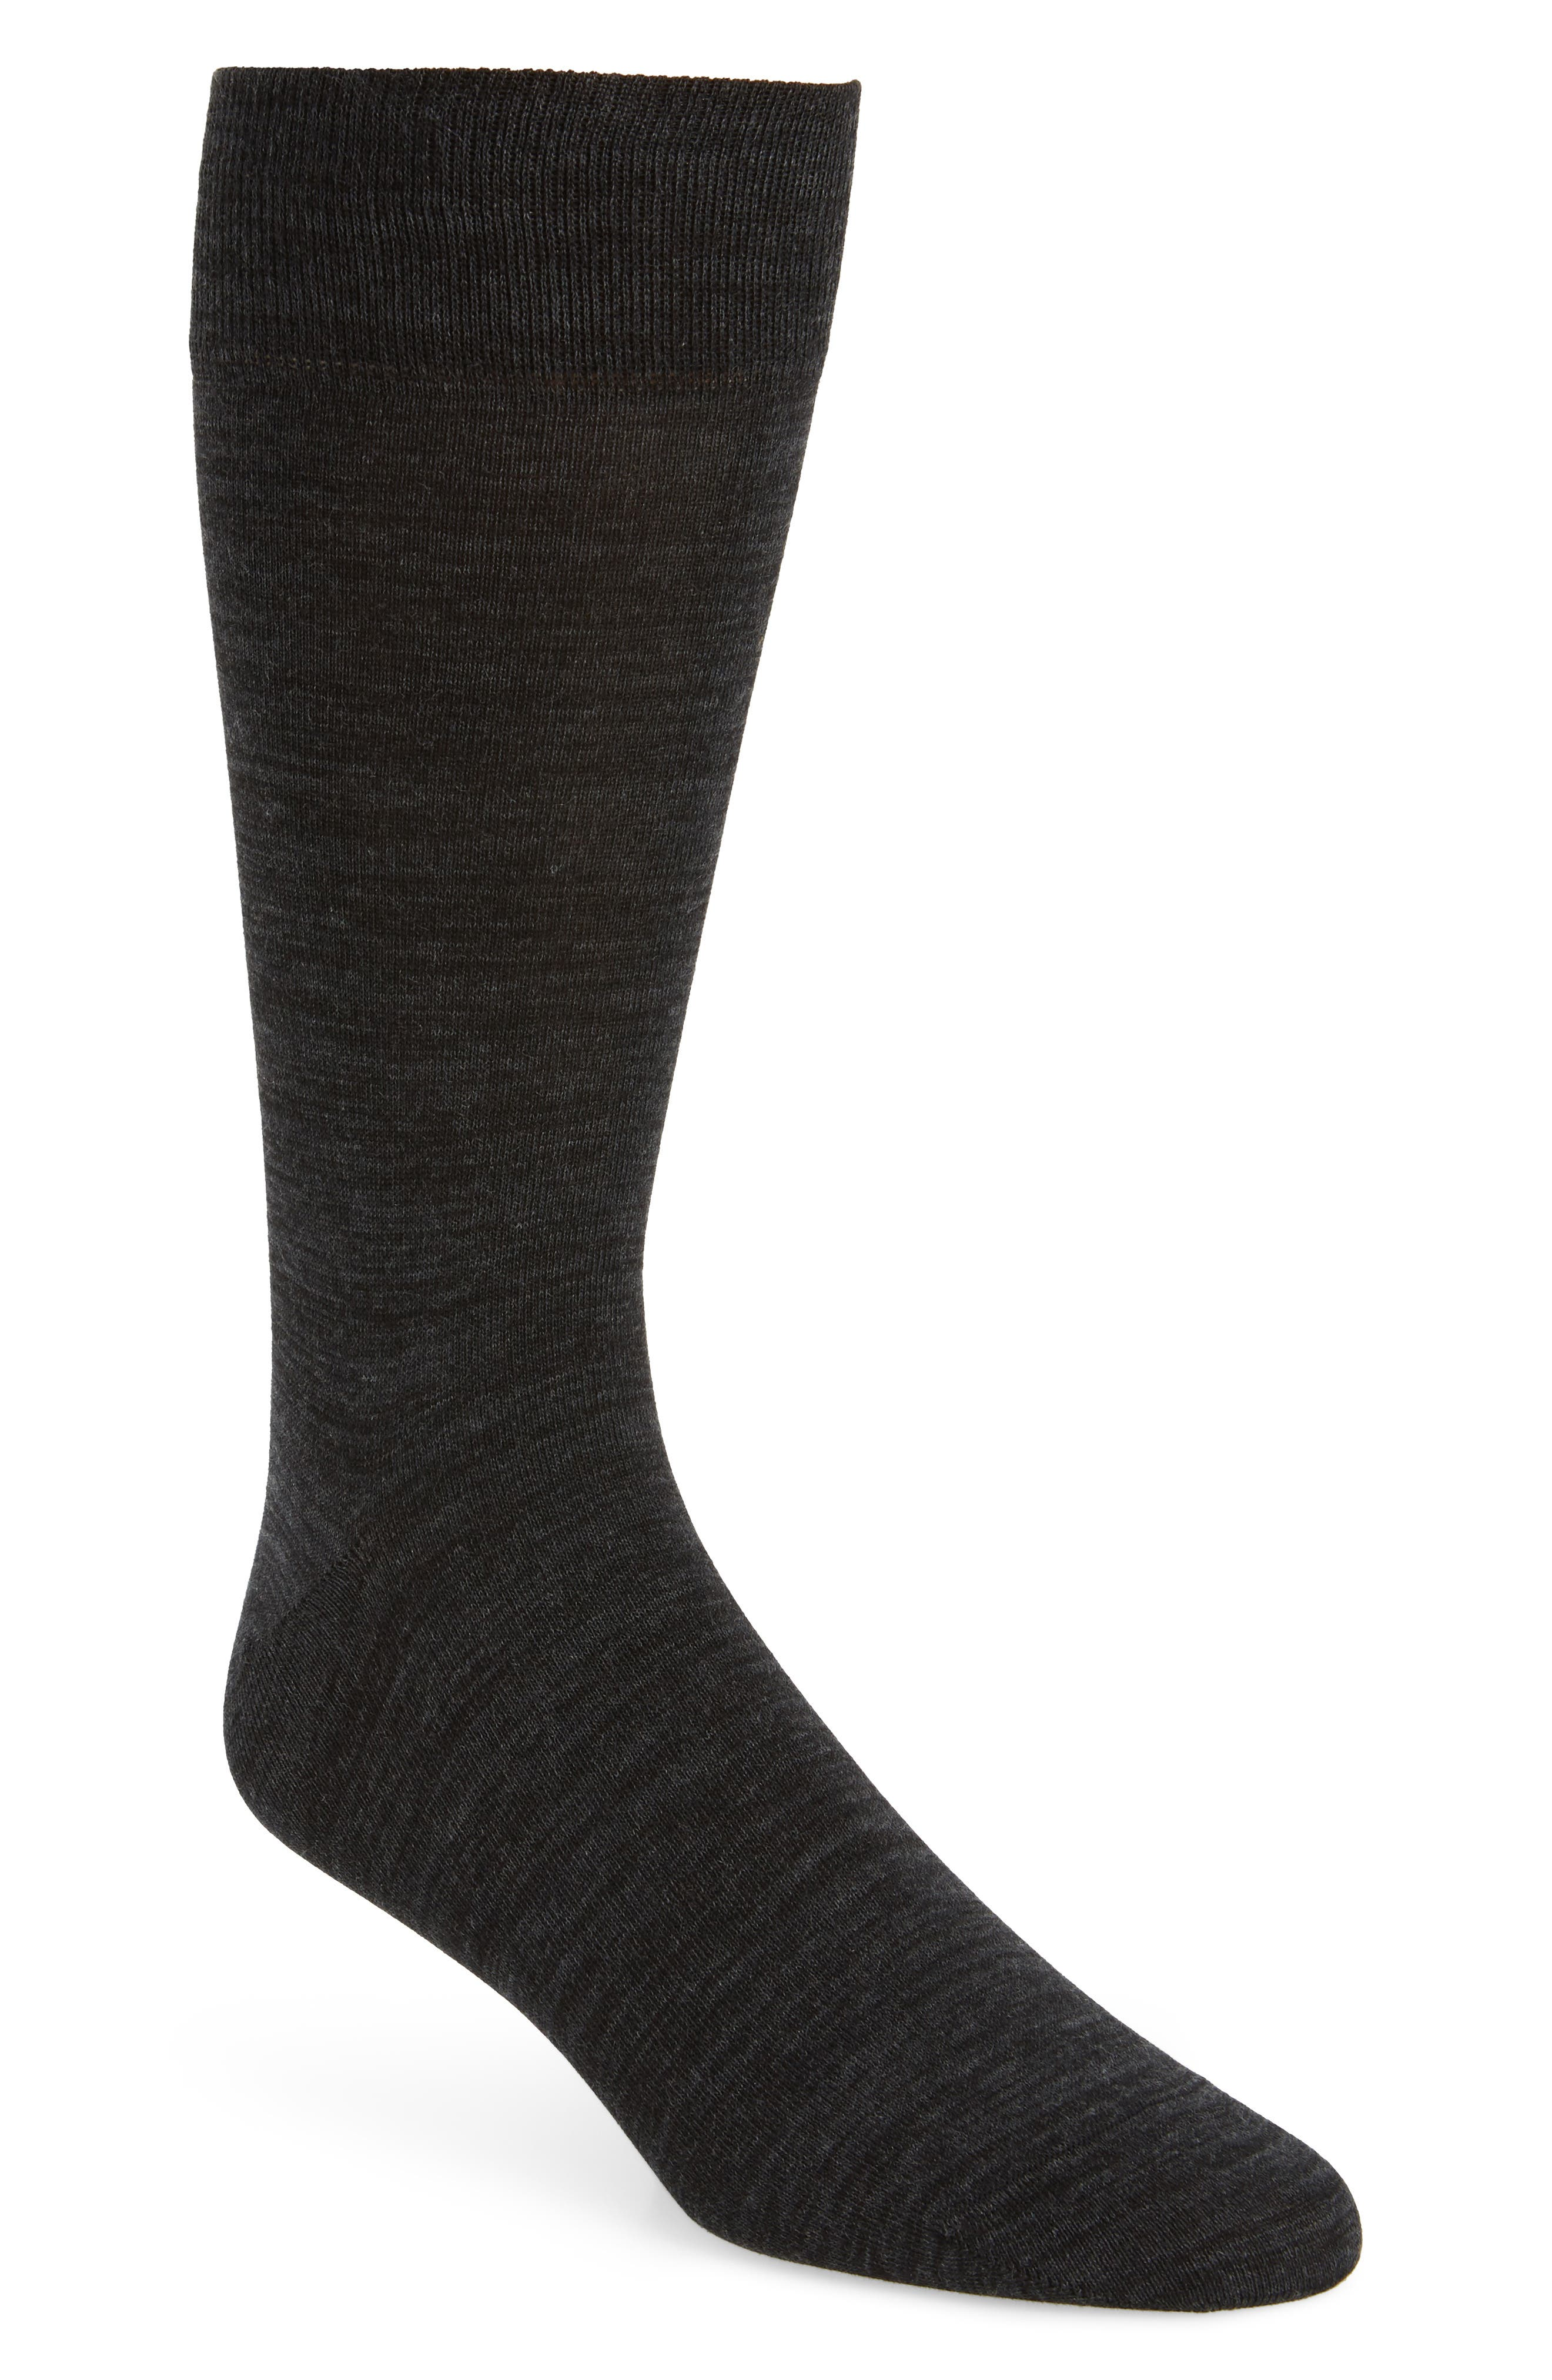 Solid Socks,                         Main,                         color, 027